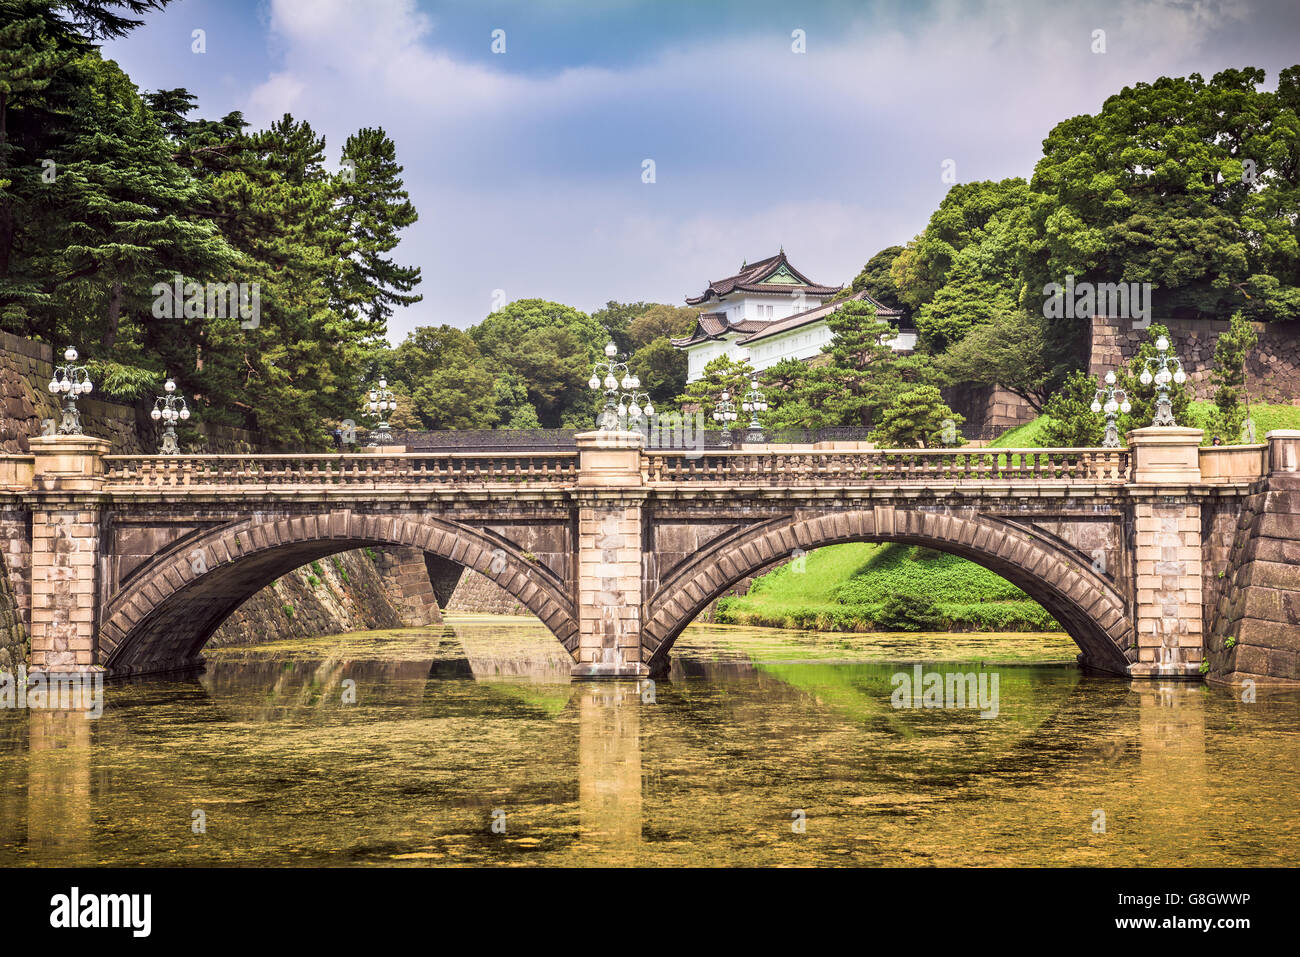 Tokyo Imperial Palace of Japan moat and bridge. - Stock Image